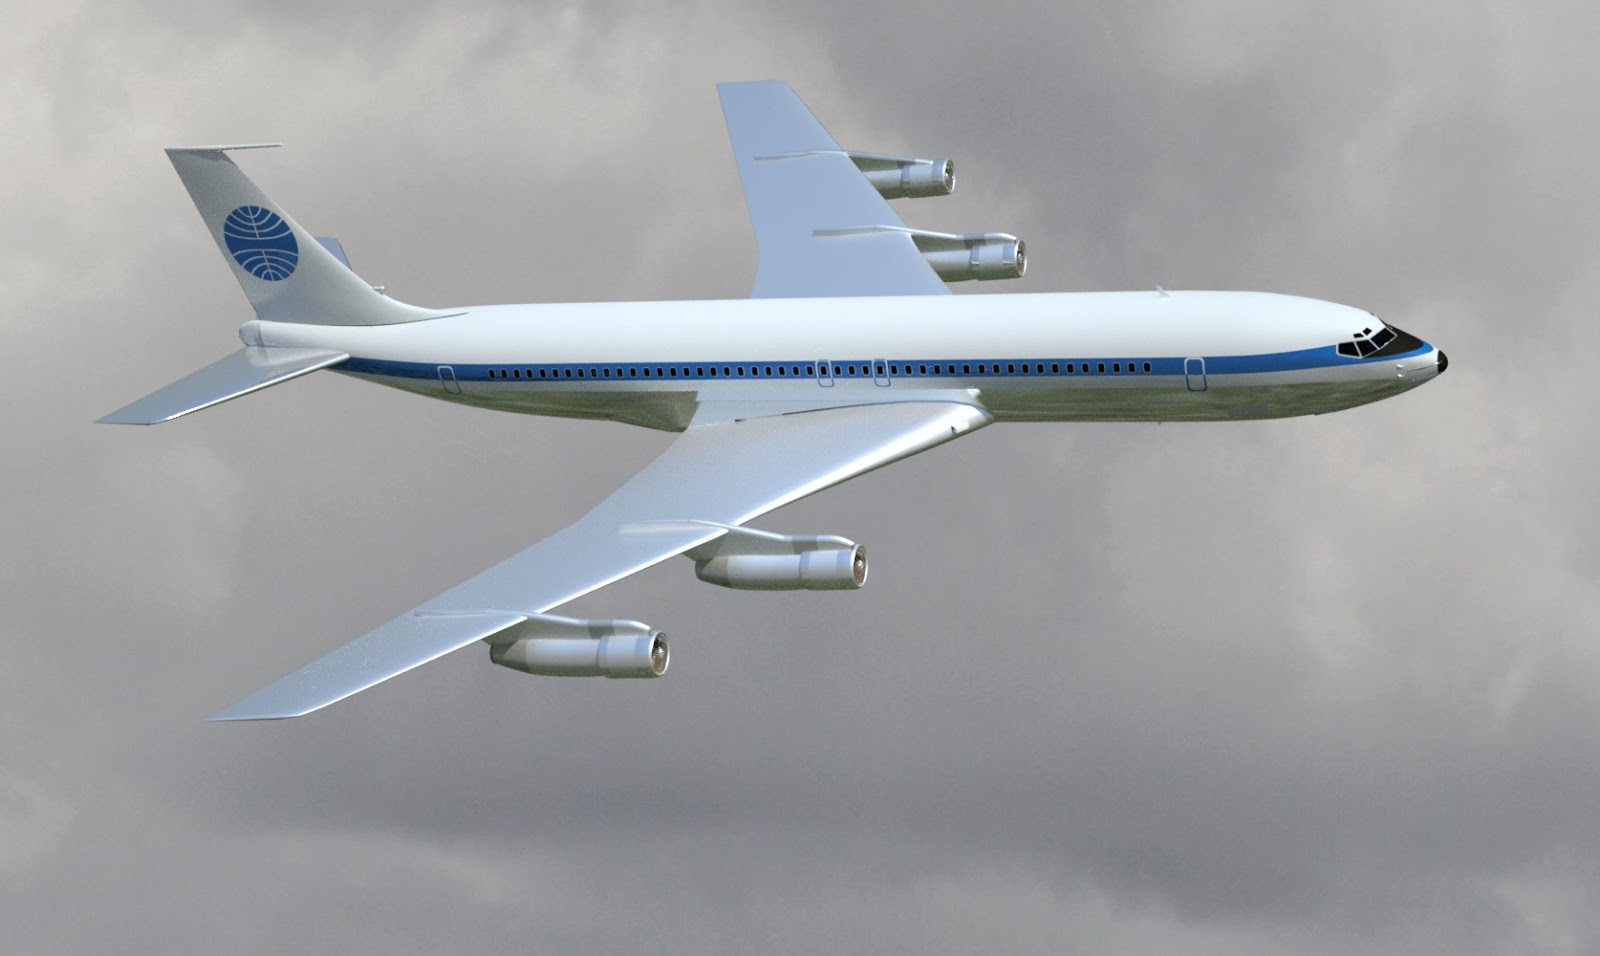 Philip Air Inc: FOR SALE BOEING 707/KC-135/AWACS AIRCRAFT